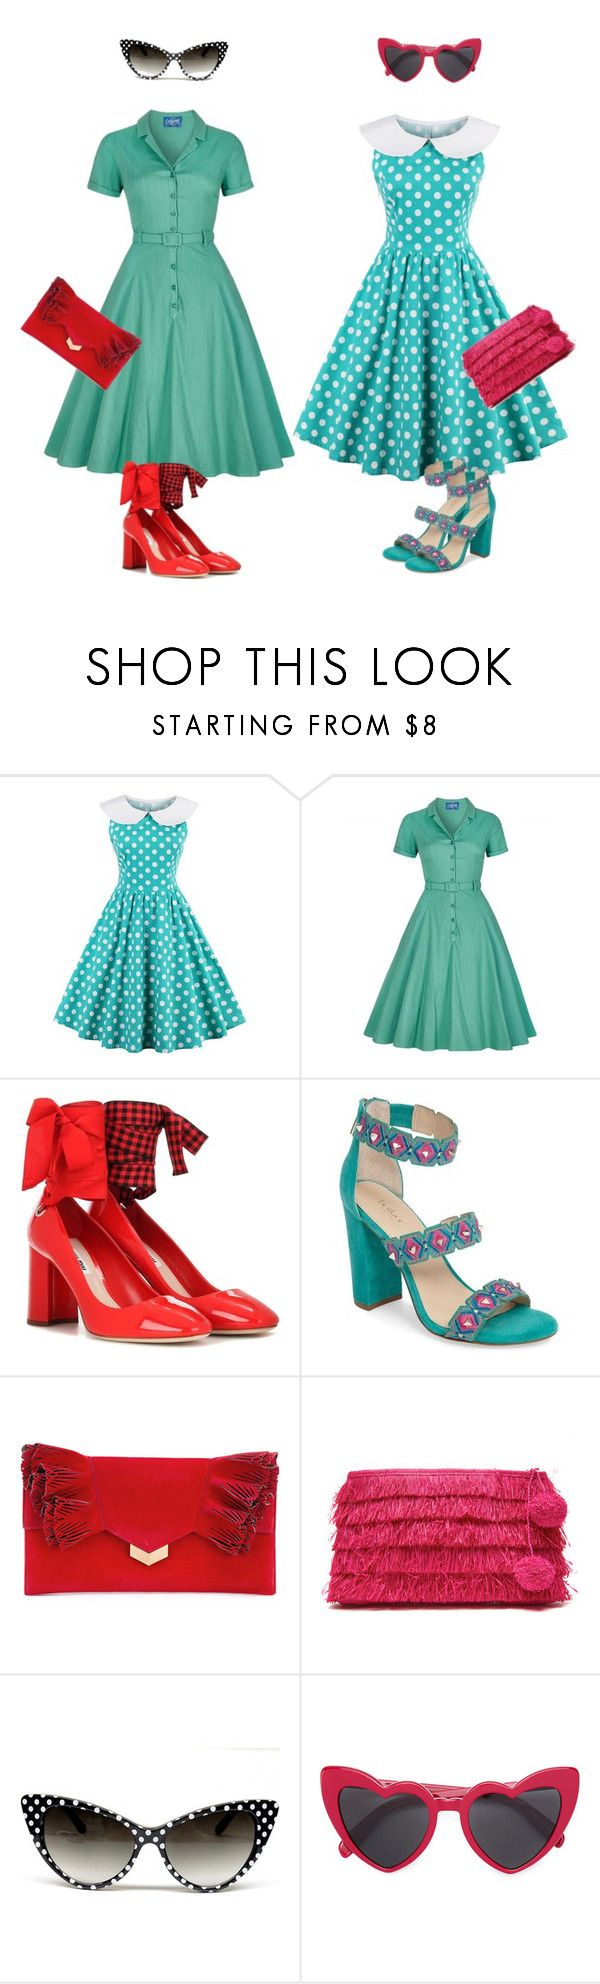 """""""Бирюза"""" by repriza ❤ liked on Polyvore featuring Collectif, Miu Miu, Botkier, Jimmy Choo, Mar y Sol and Yves Saint Laurent"""